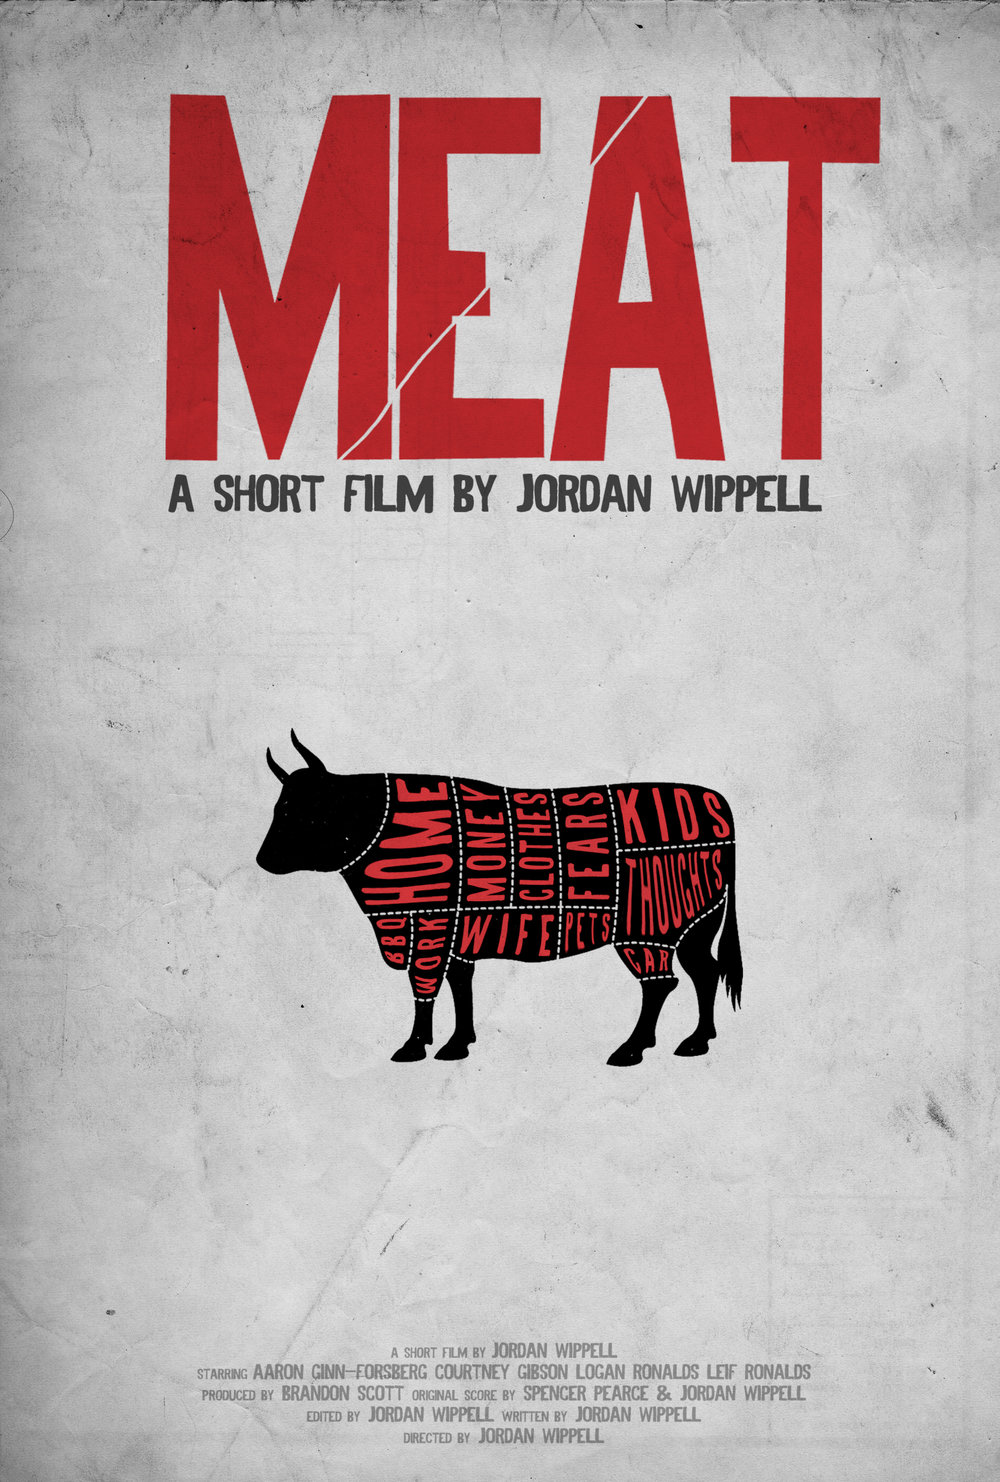 MEAT - Poster2.jpg